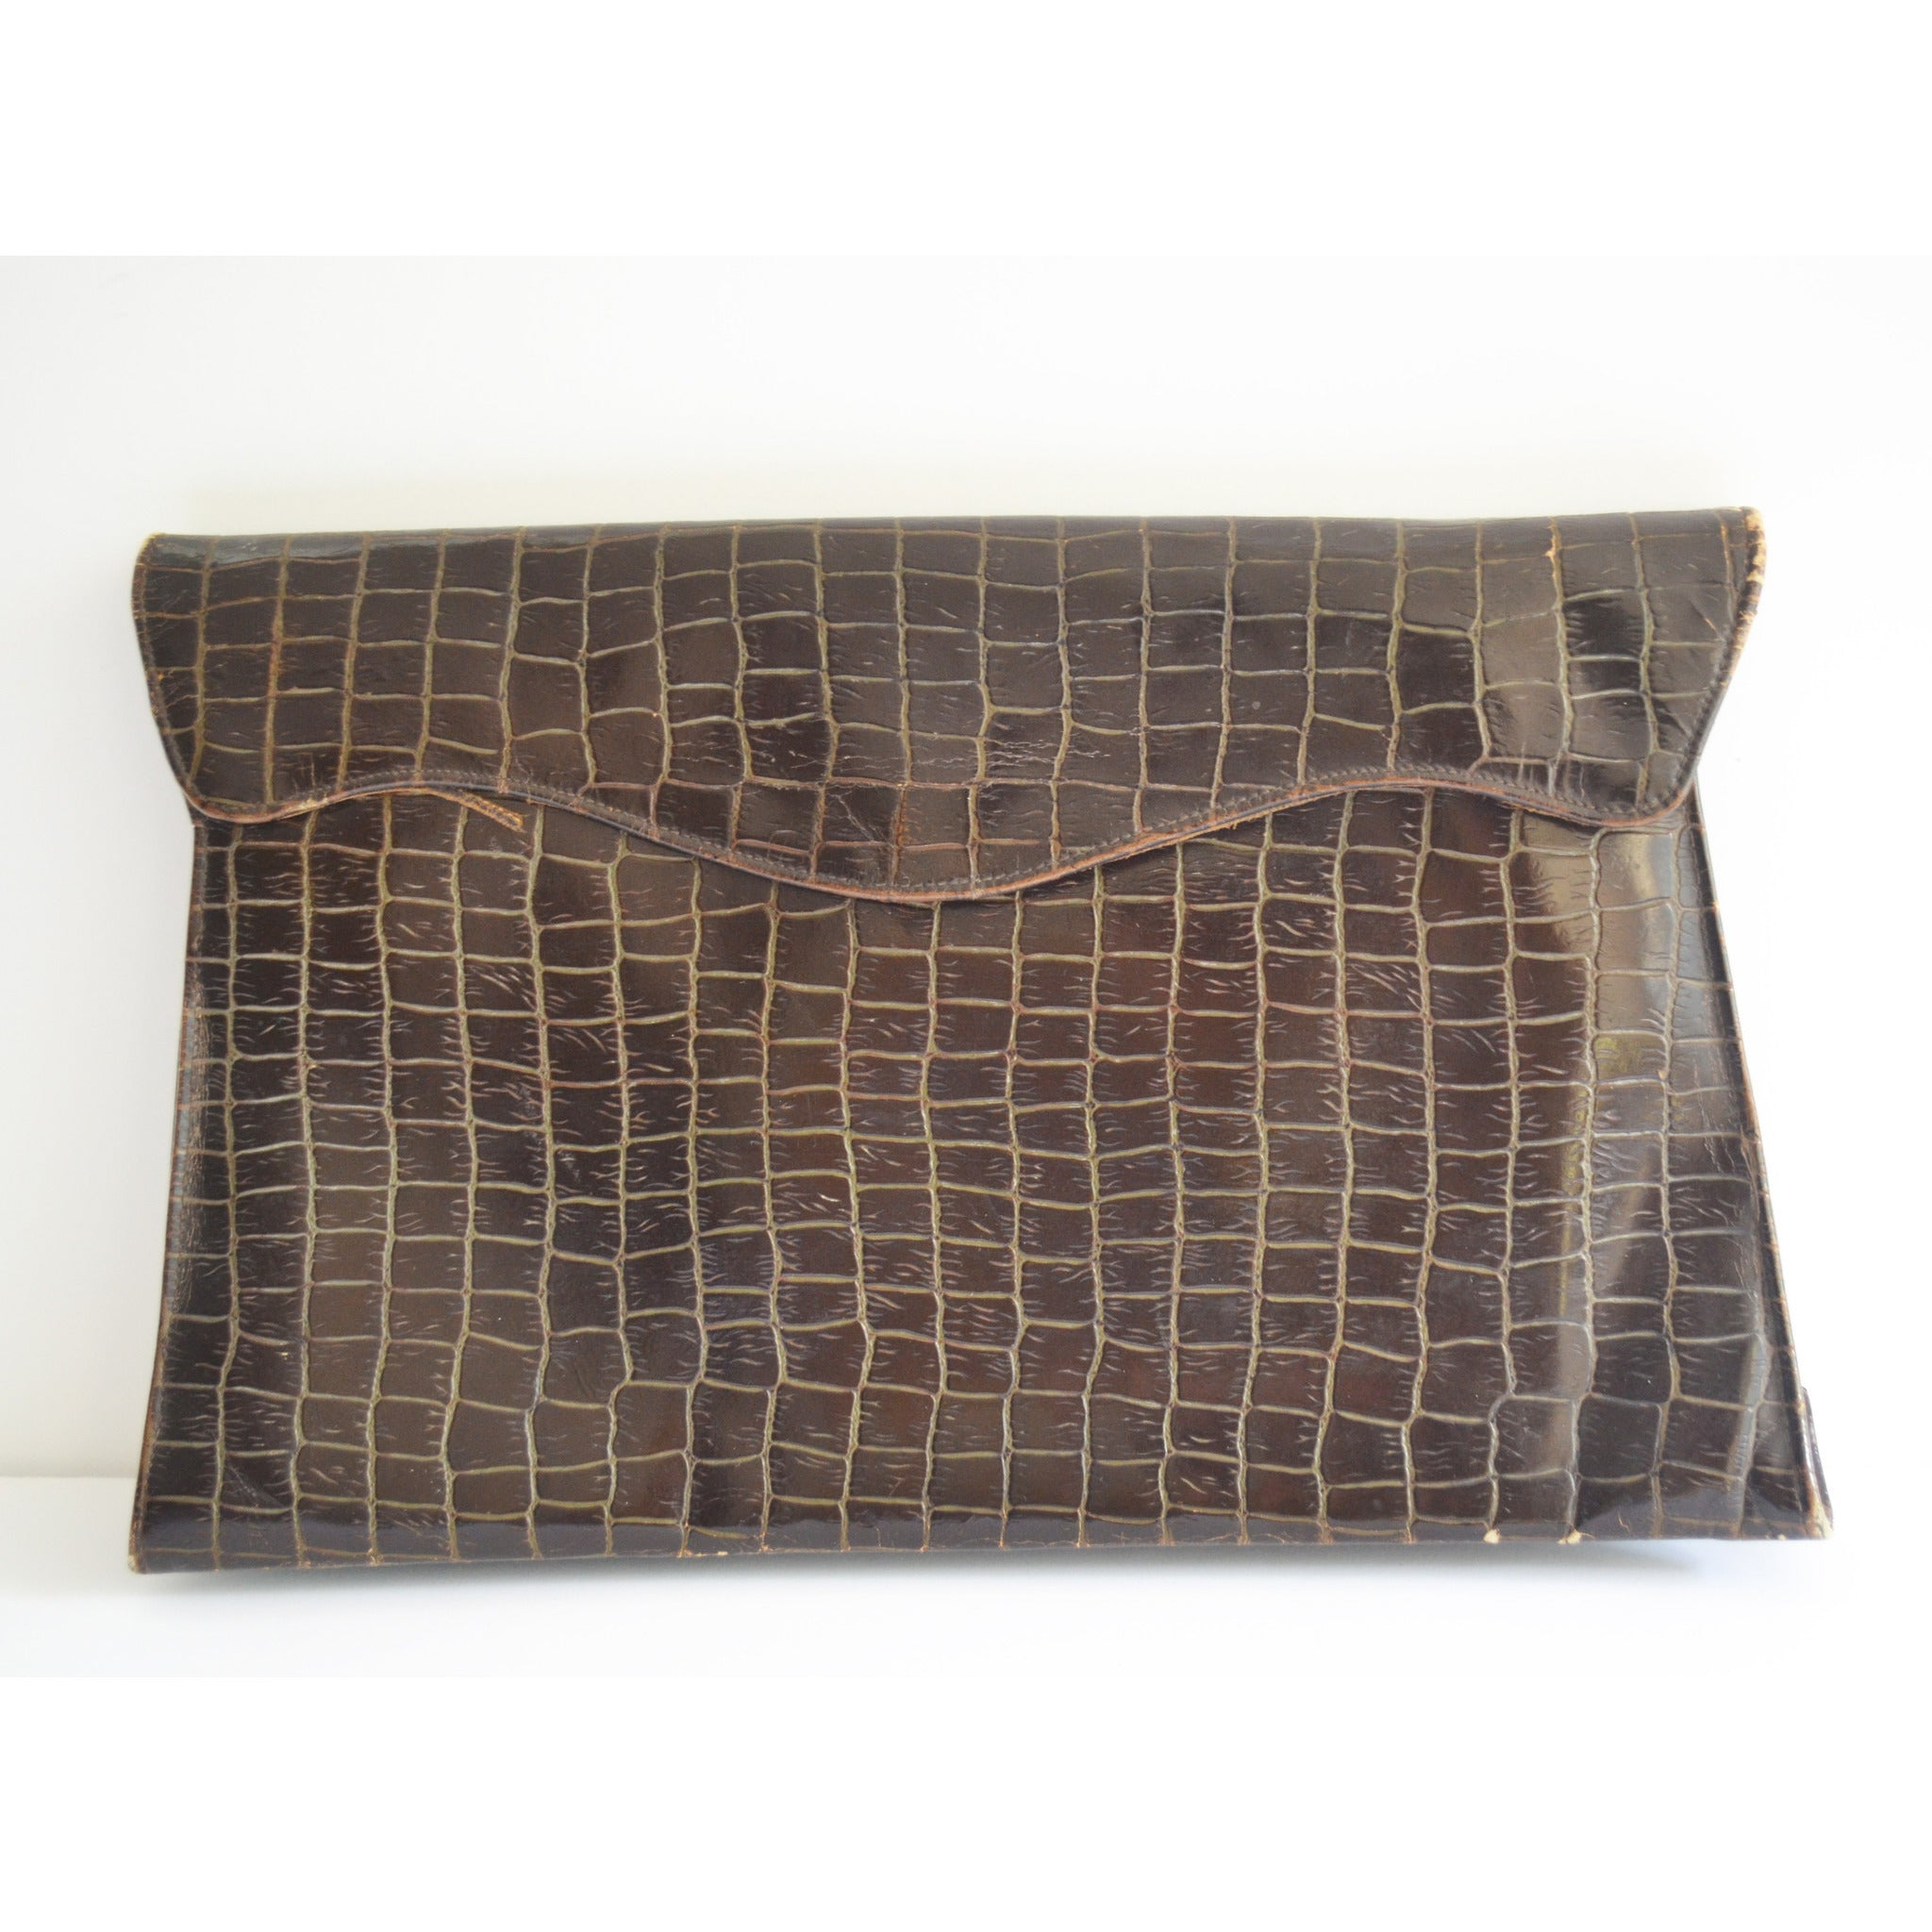 Vintage Crocodile Embossed Leather Clutch Purse